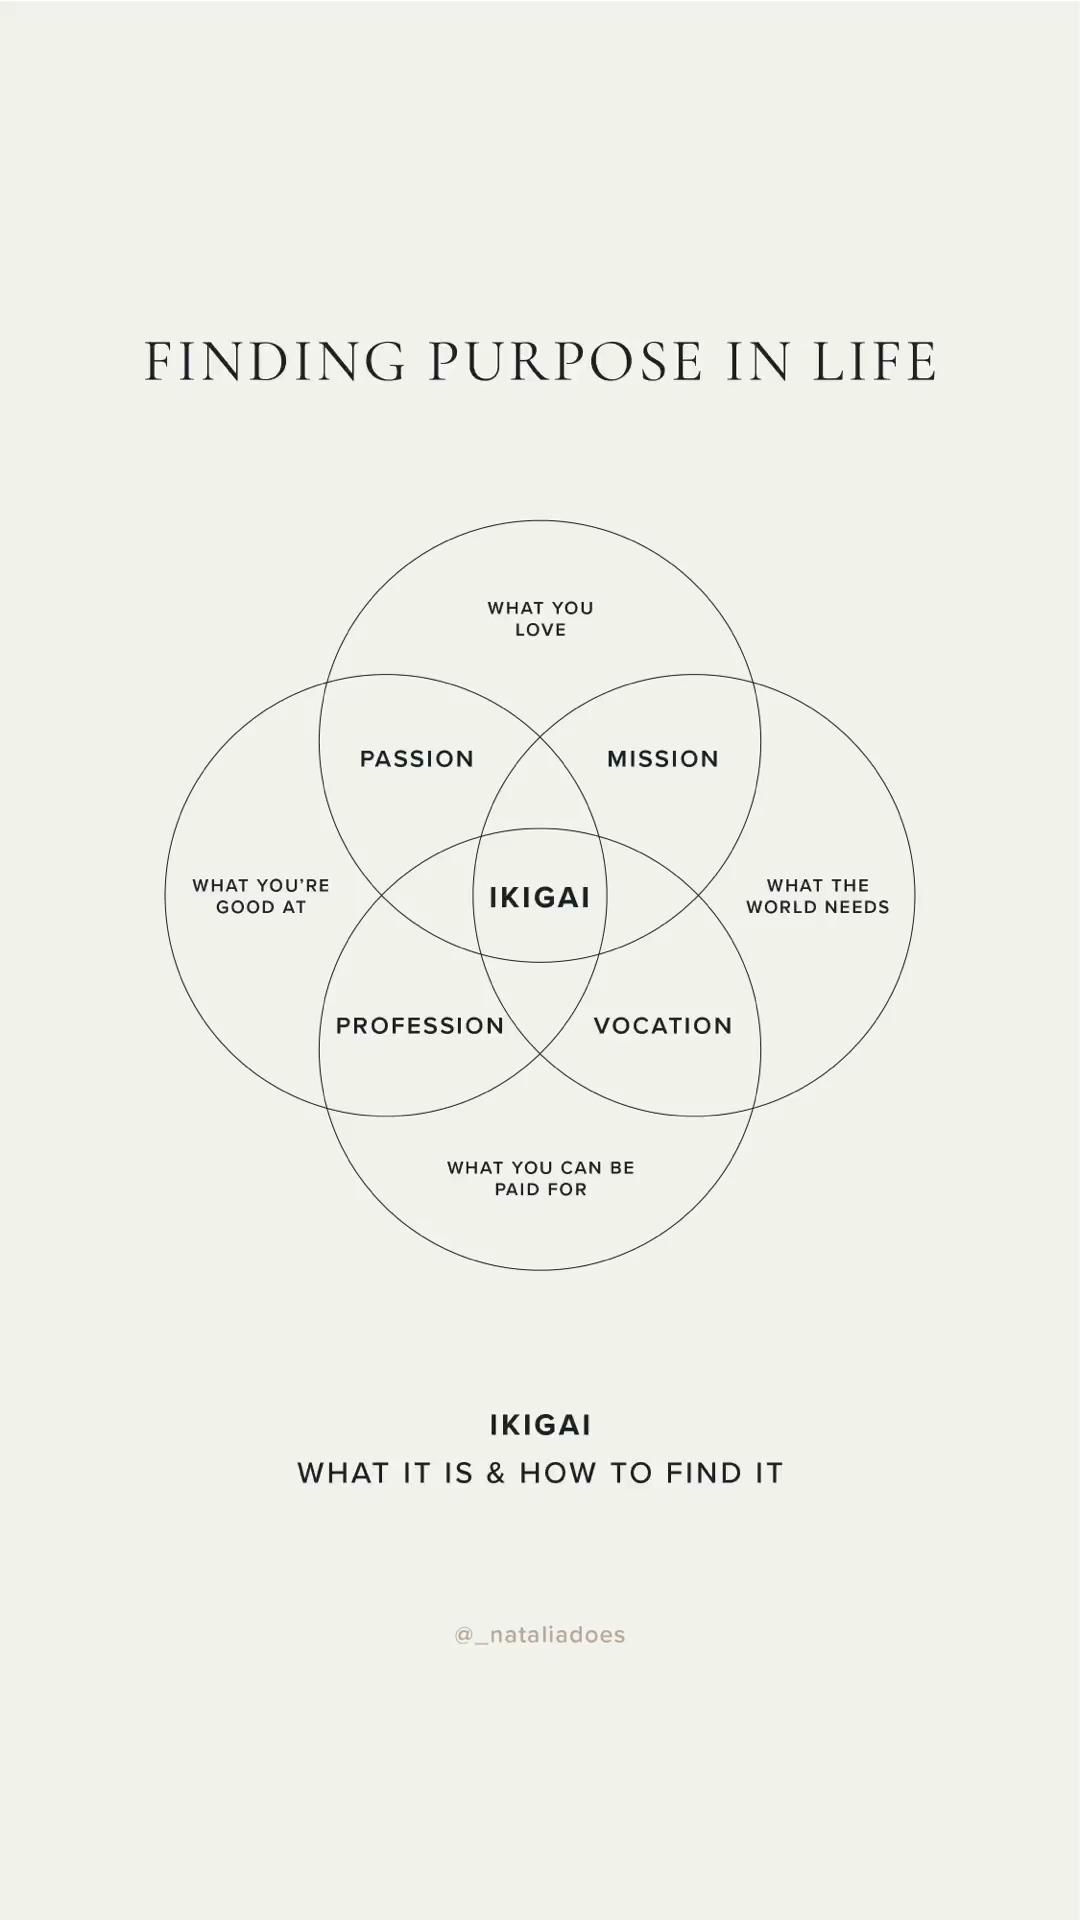 Finding purpose in life with IKIGAI - what it is & how to find it in just 3 steps